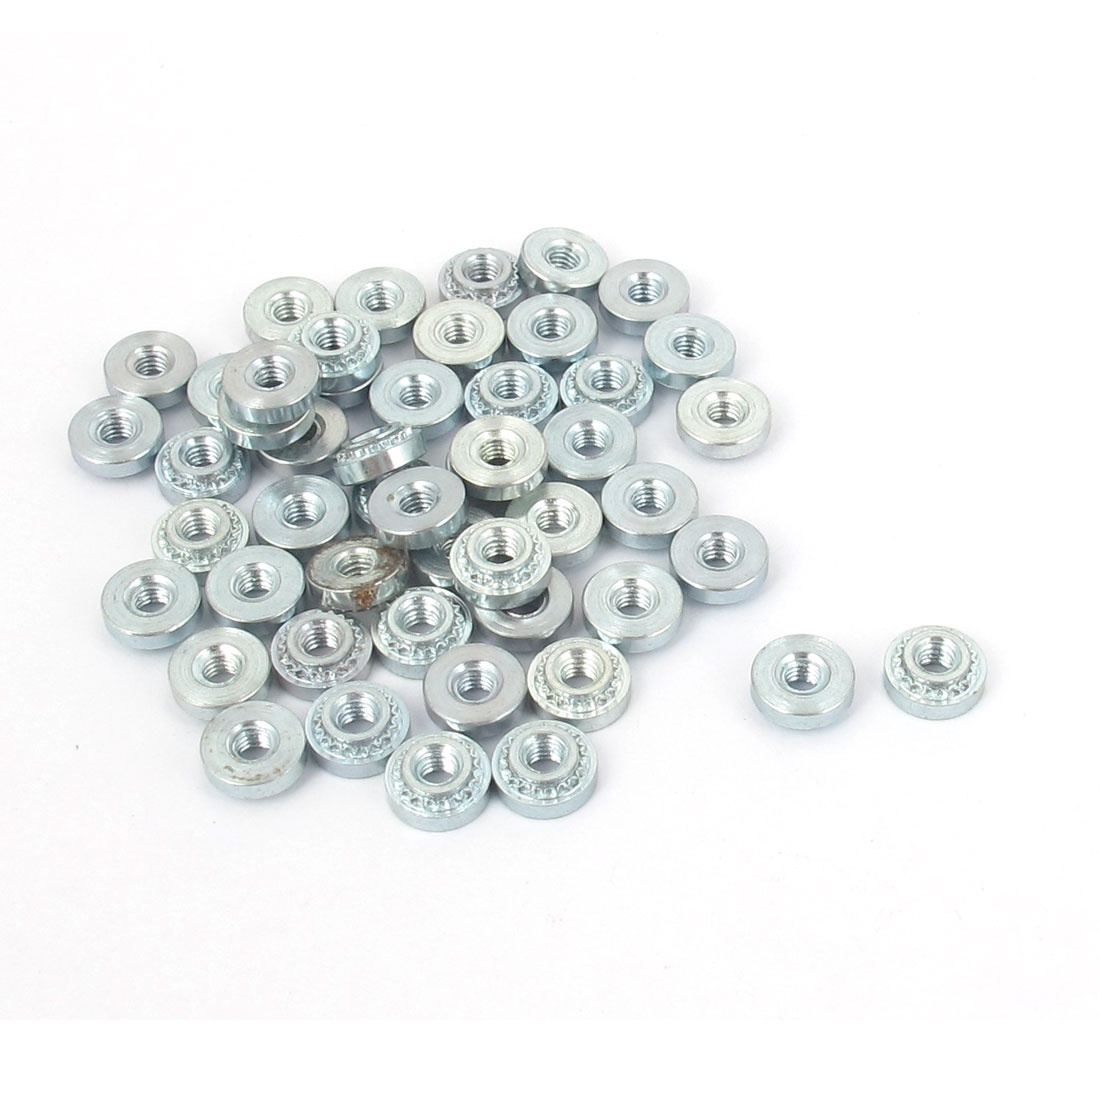 M2.5 Zinc Plated Self Clinching Rivet Nut Fastener 50pcs for 1mm Thin Plates